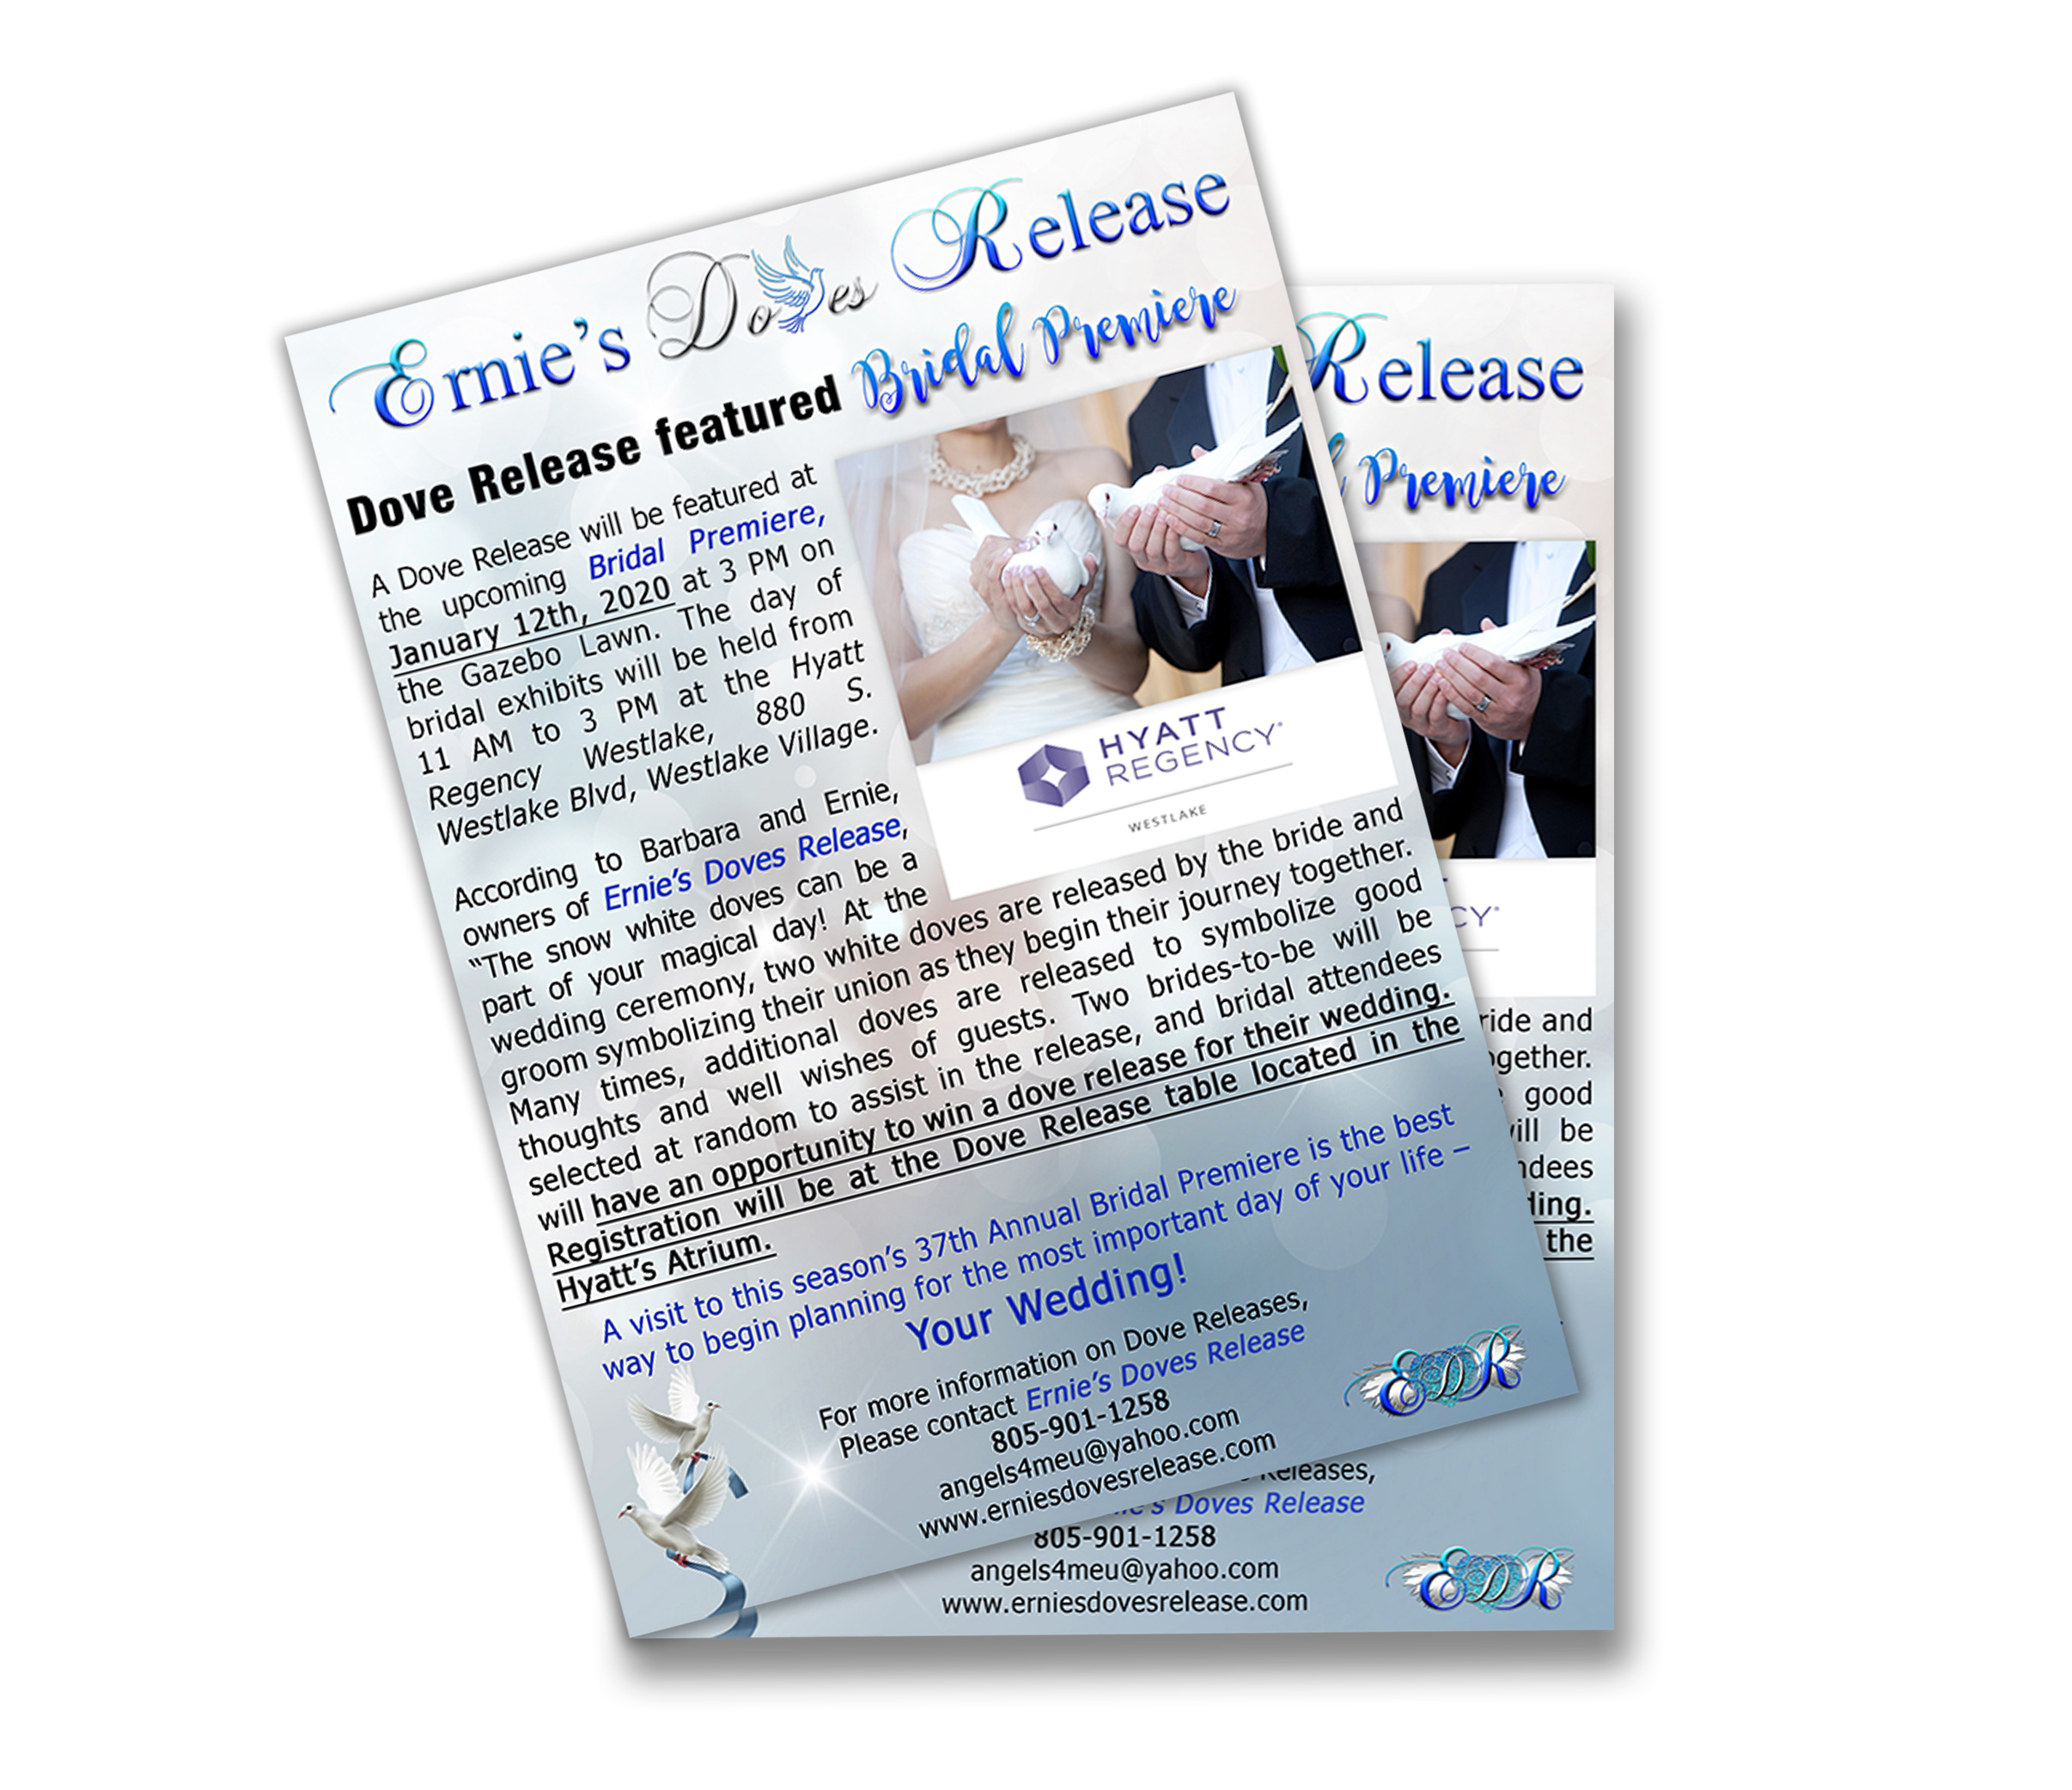 Ernies Doves Release Press Release